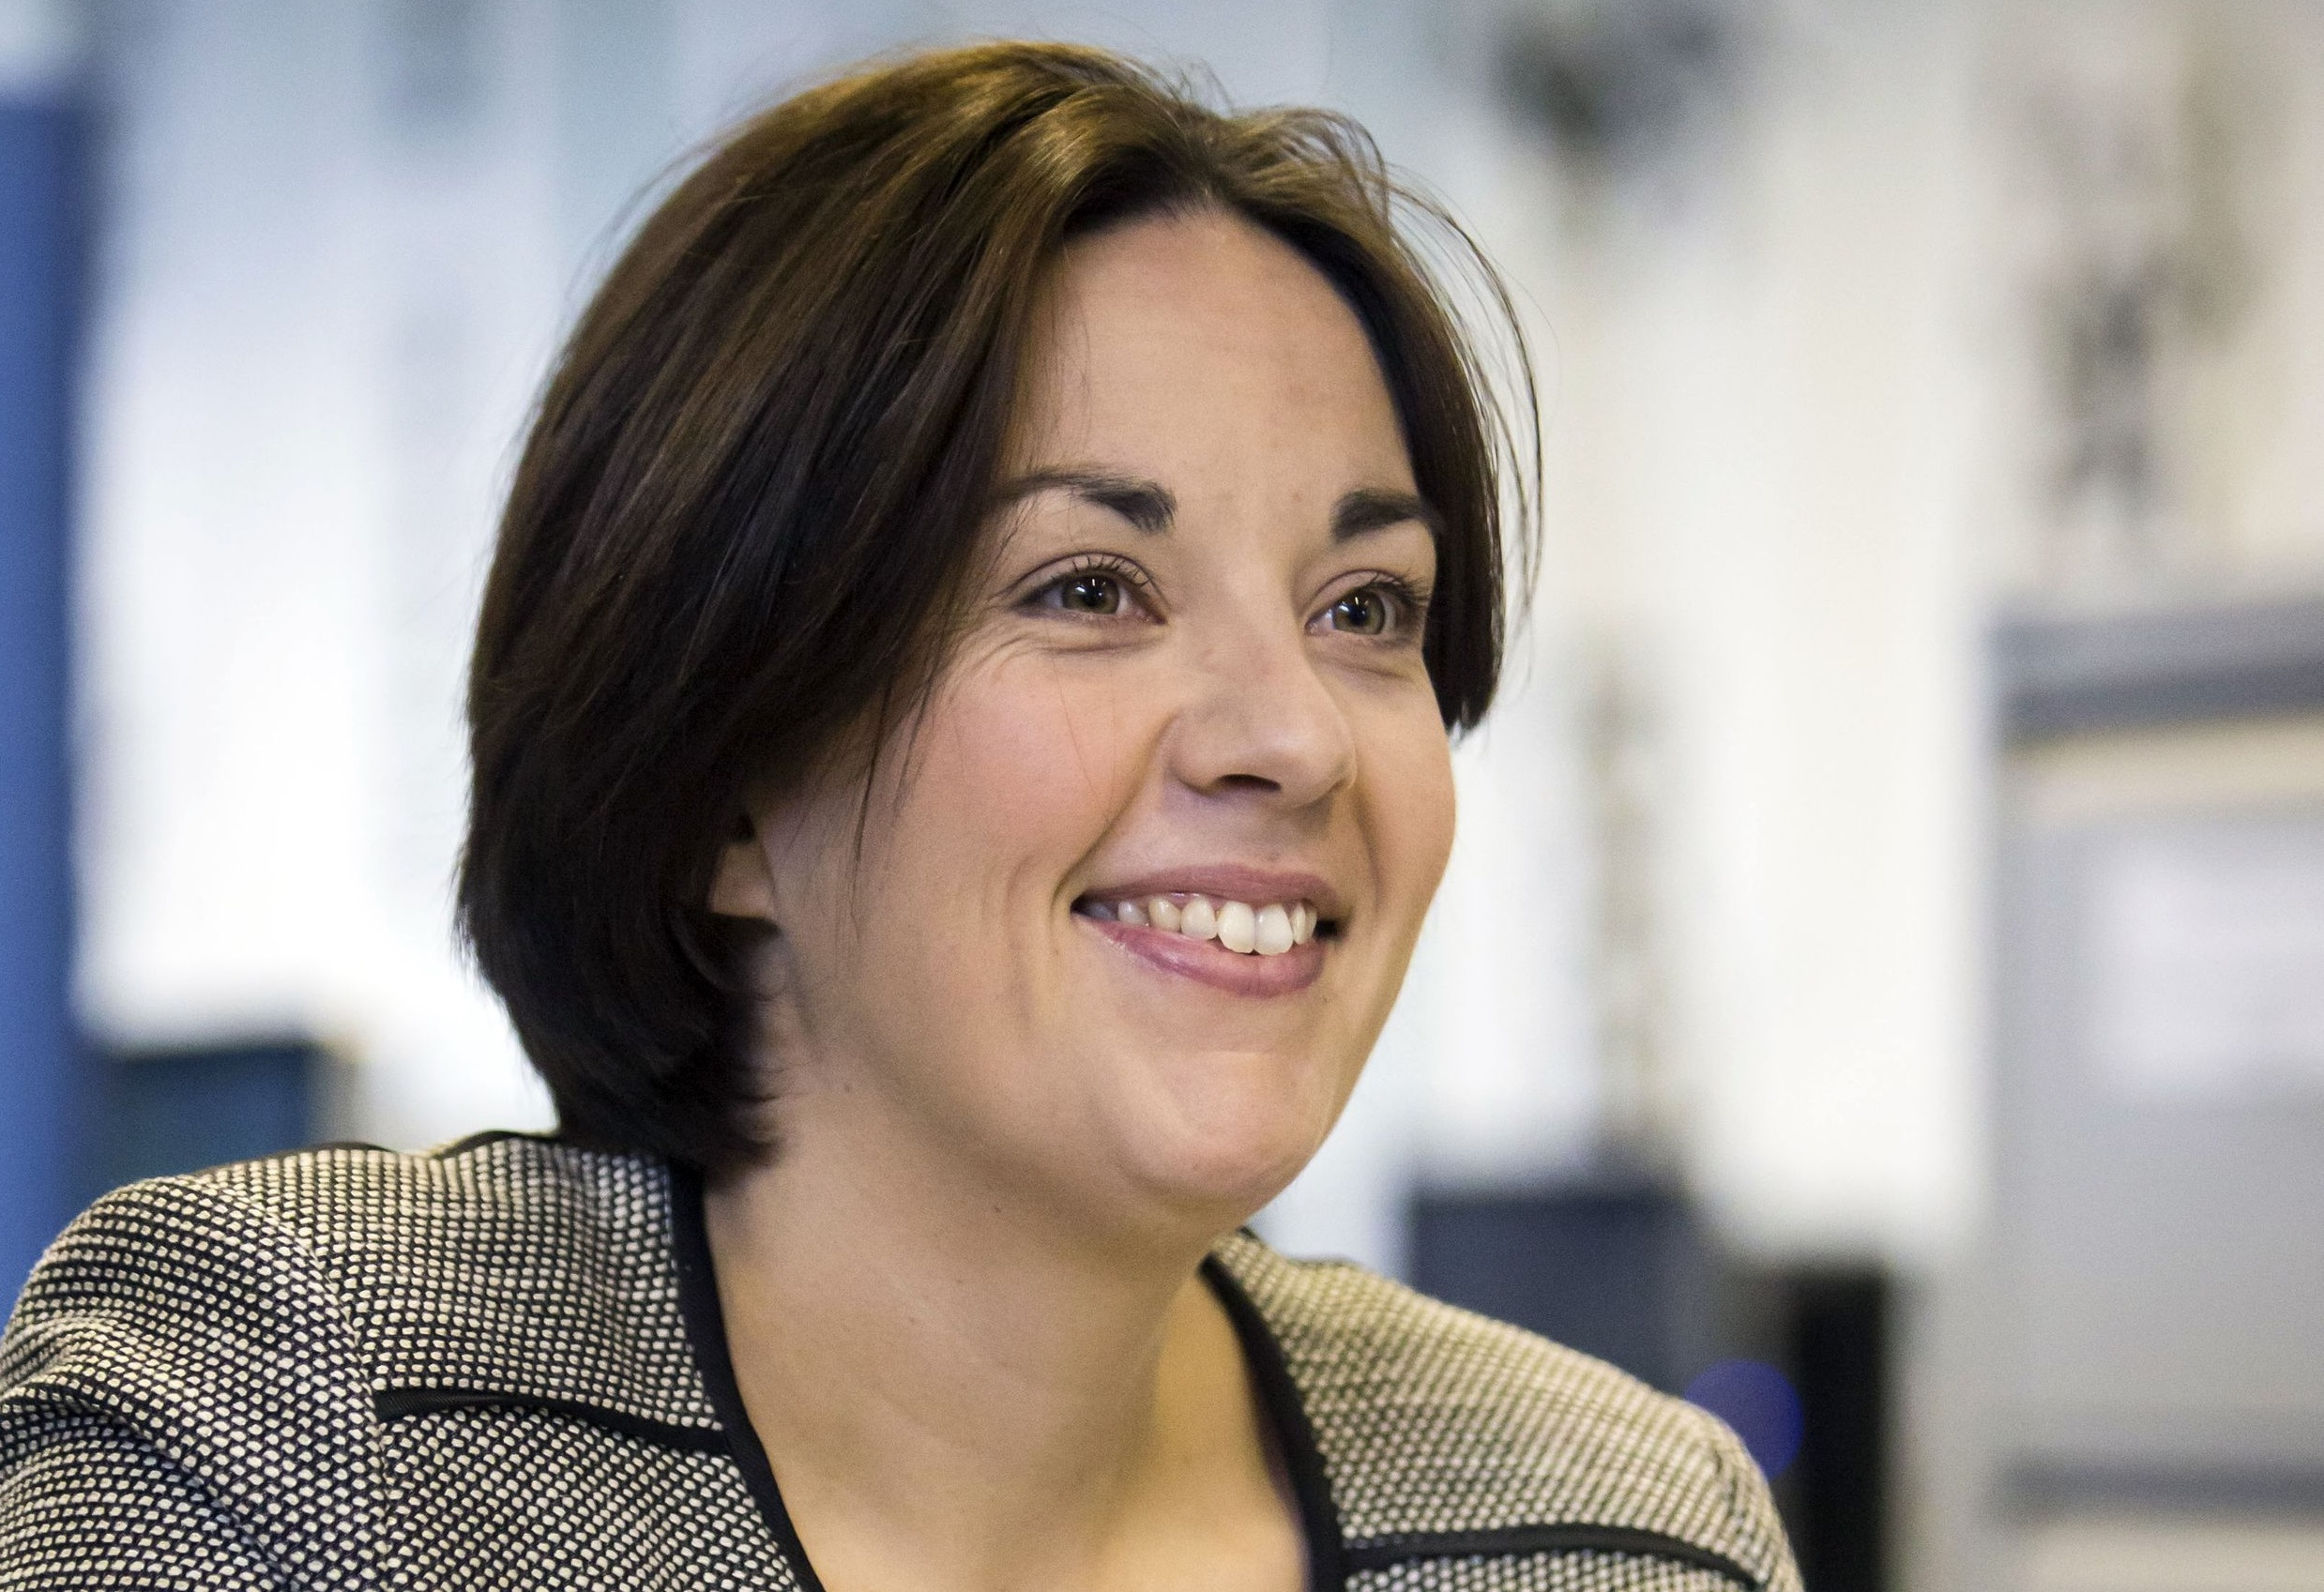 Scottish Labour leader Kezia Dugdale (Danny Lawson/PA Wire)